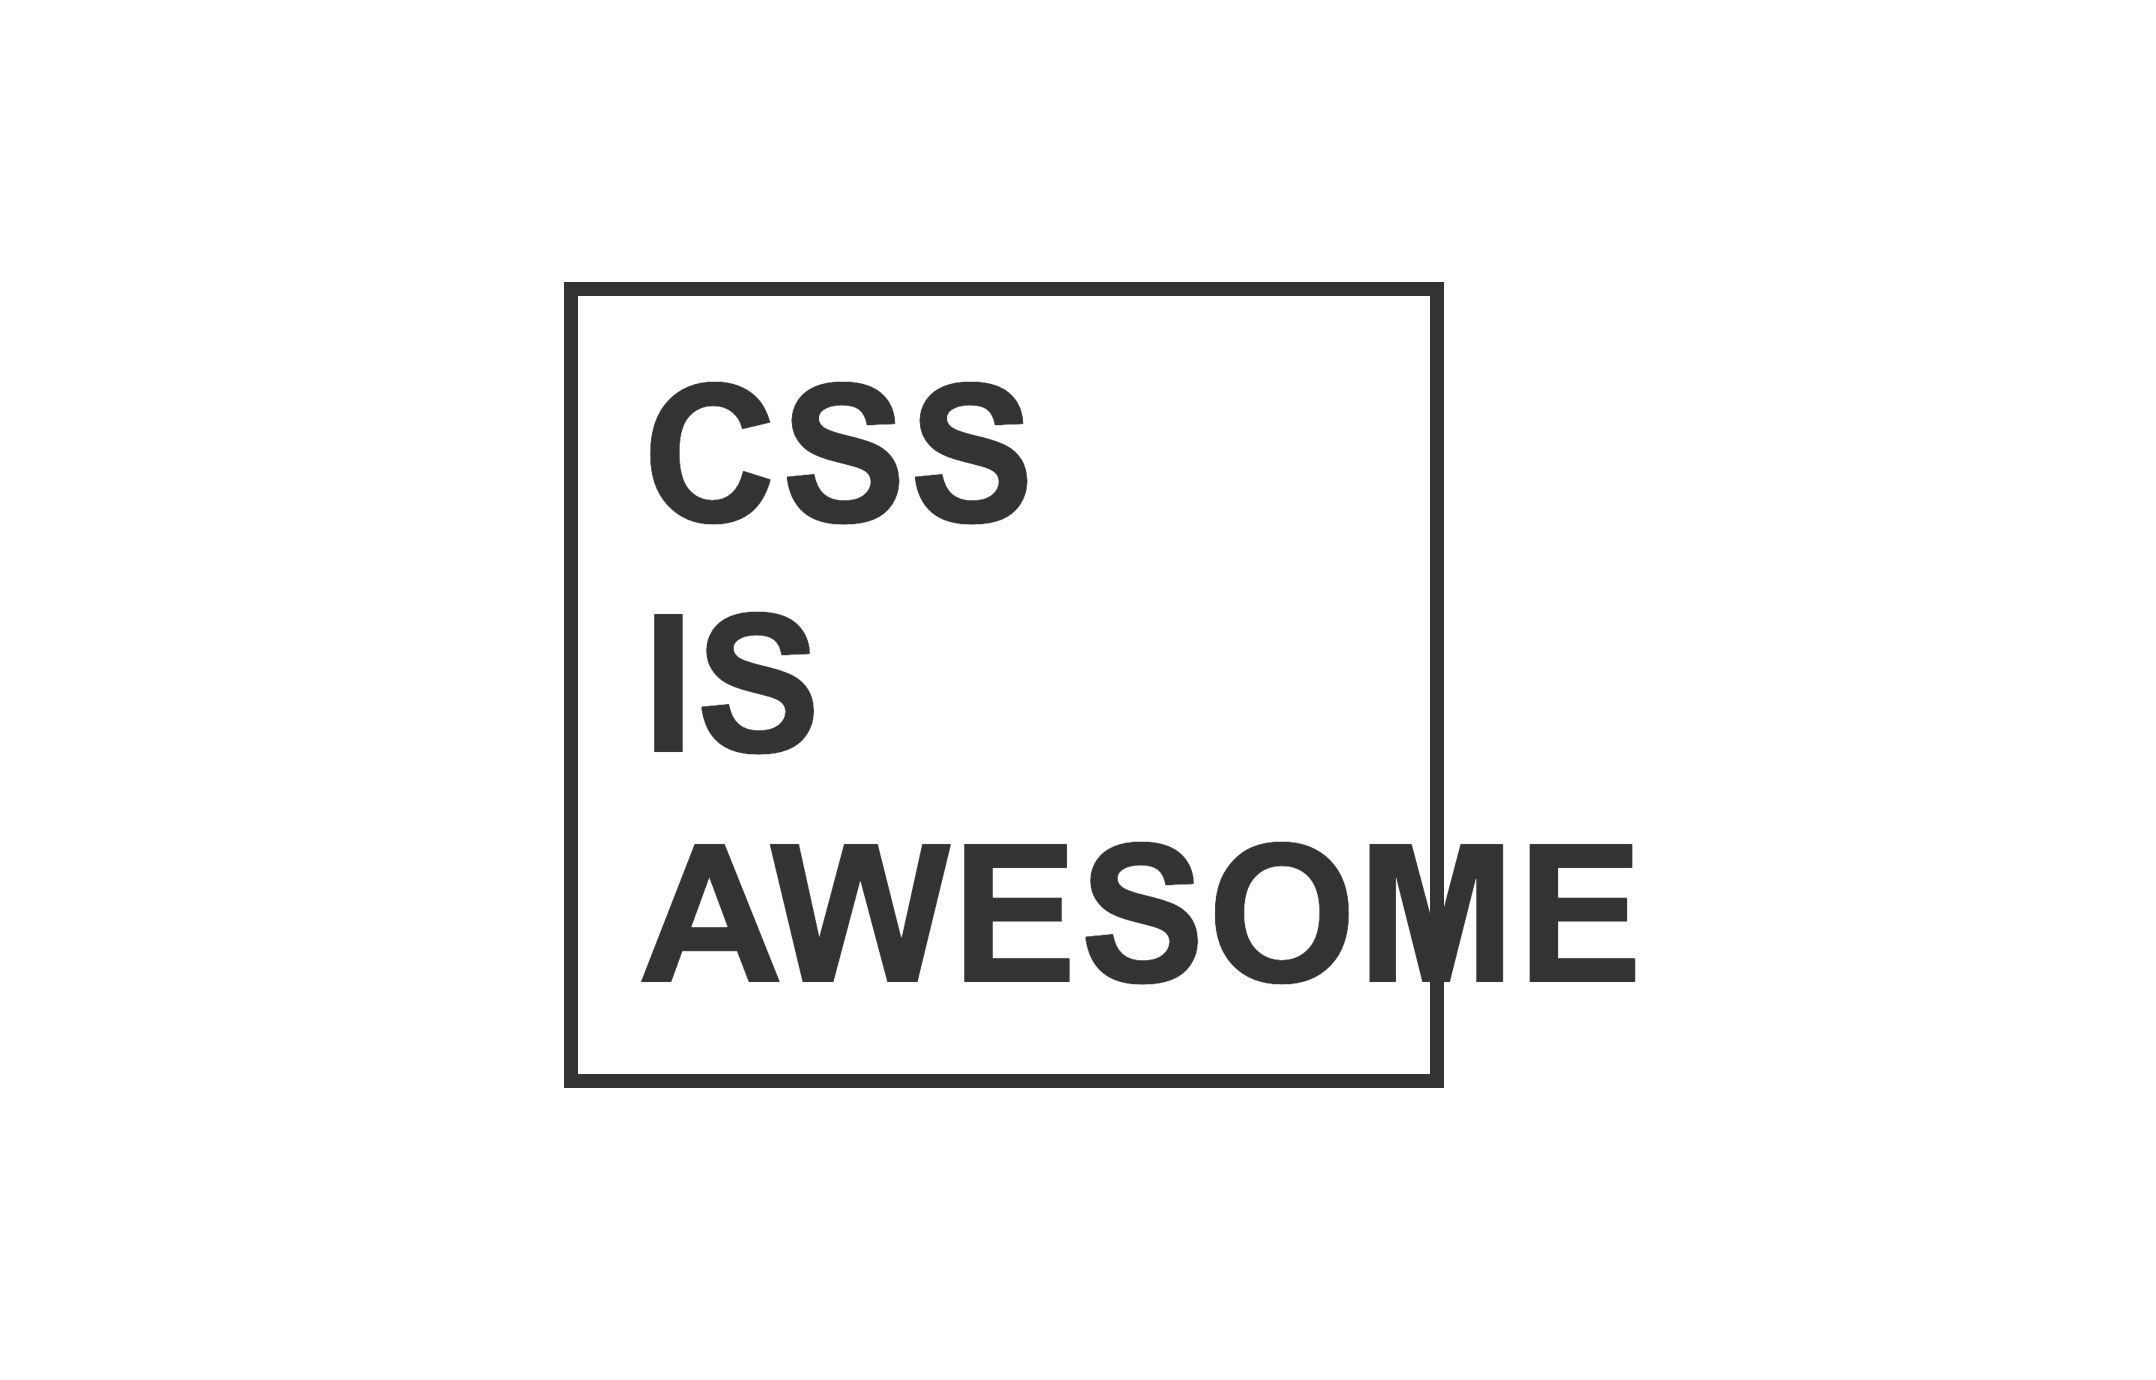 Me, just doing silly stuff with CSS